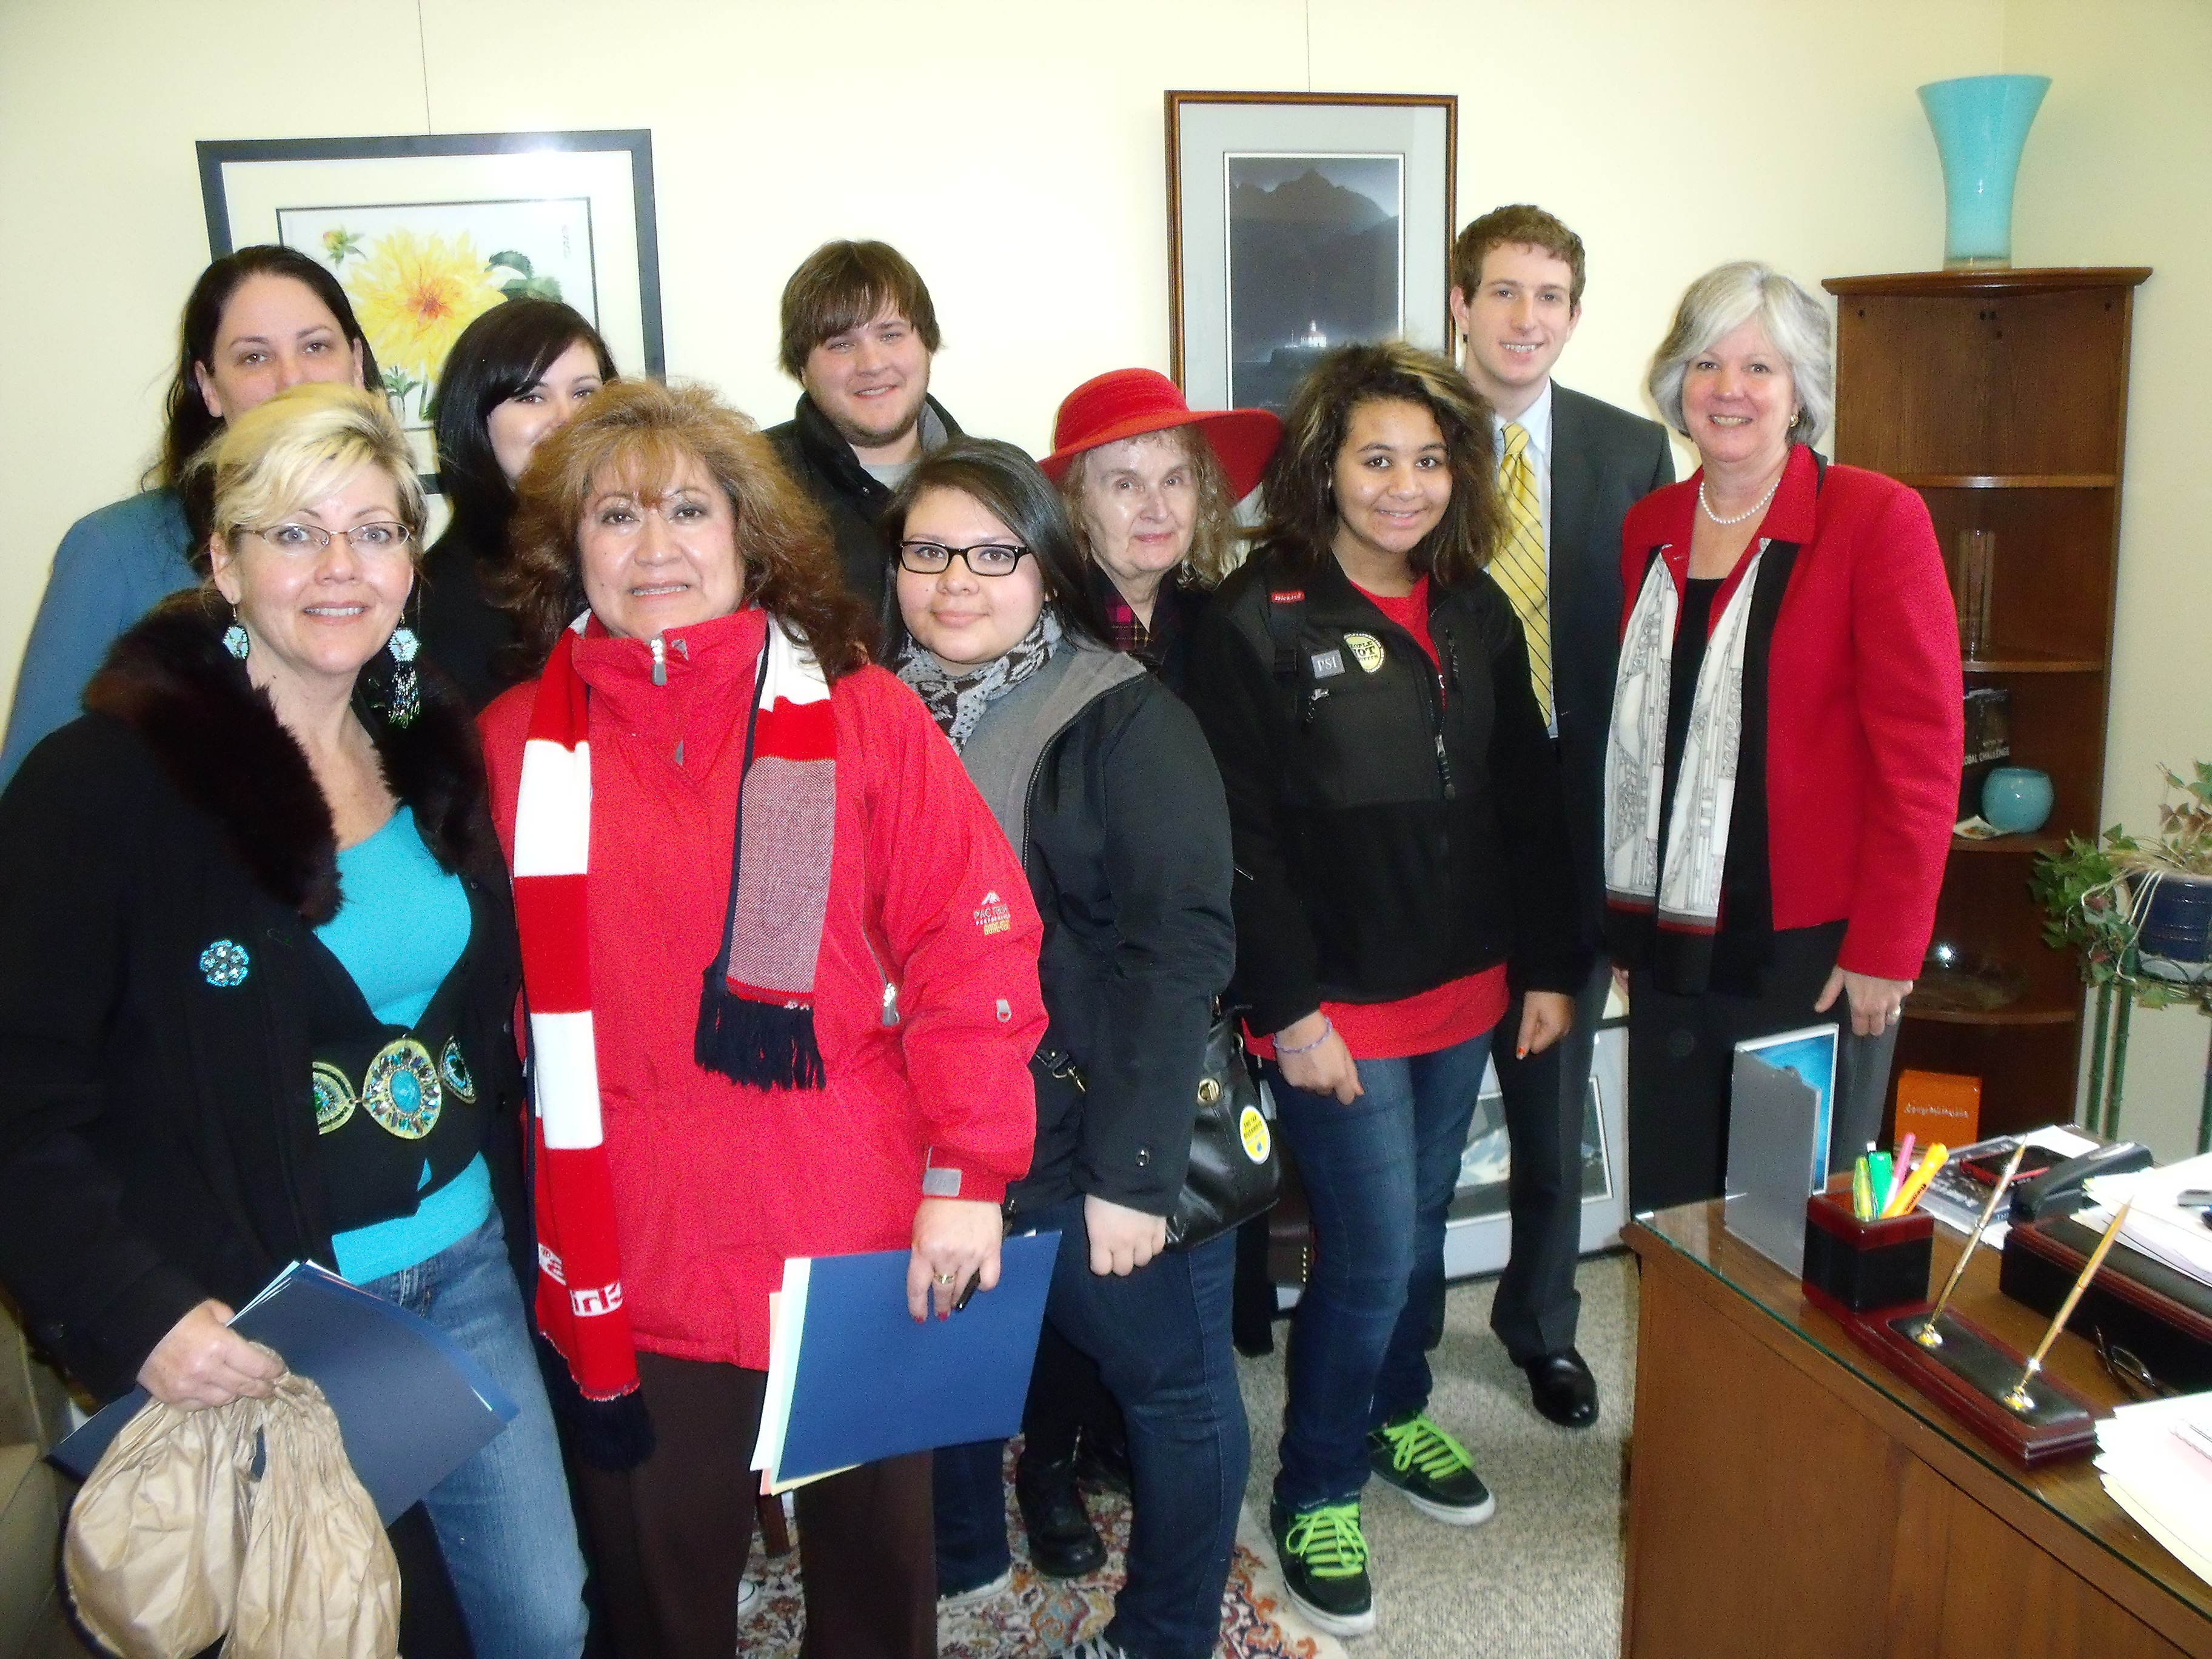 Poverty Action members lobby in Olympia for foreclosure fairness